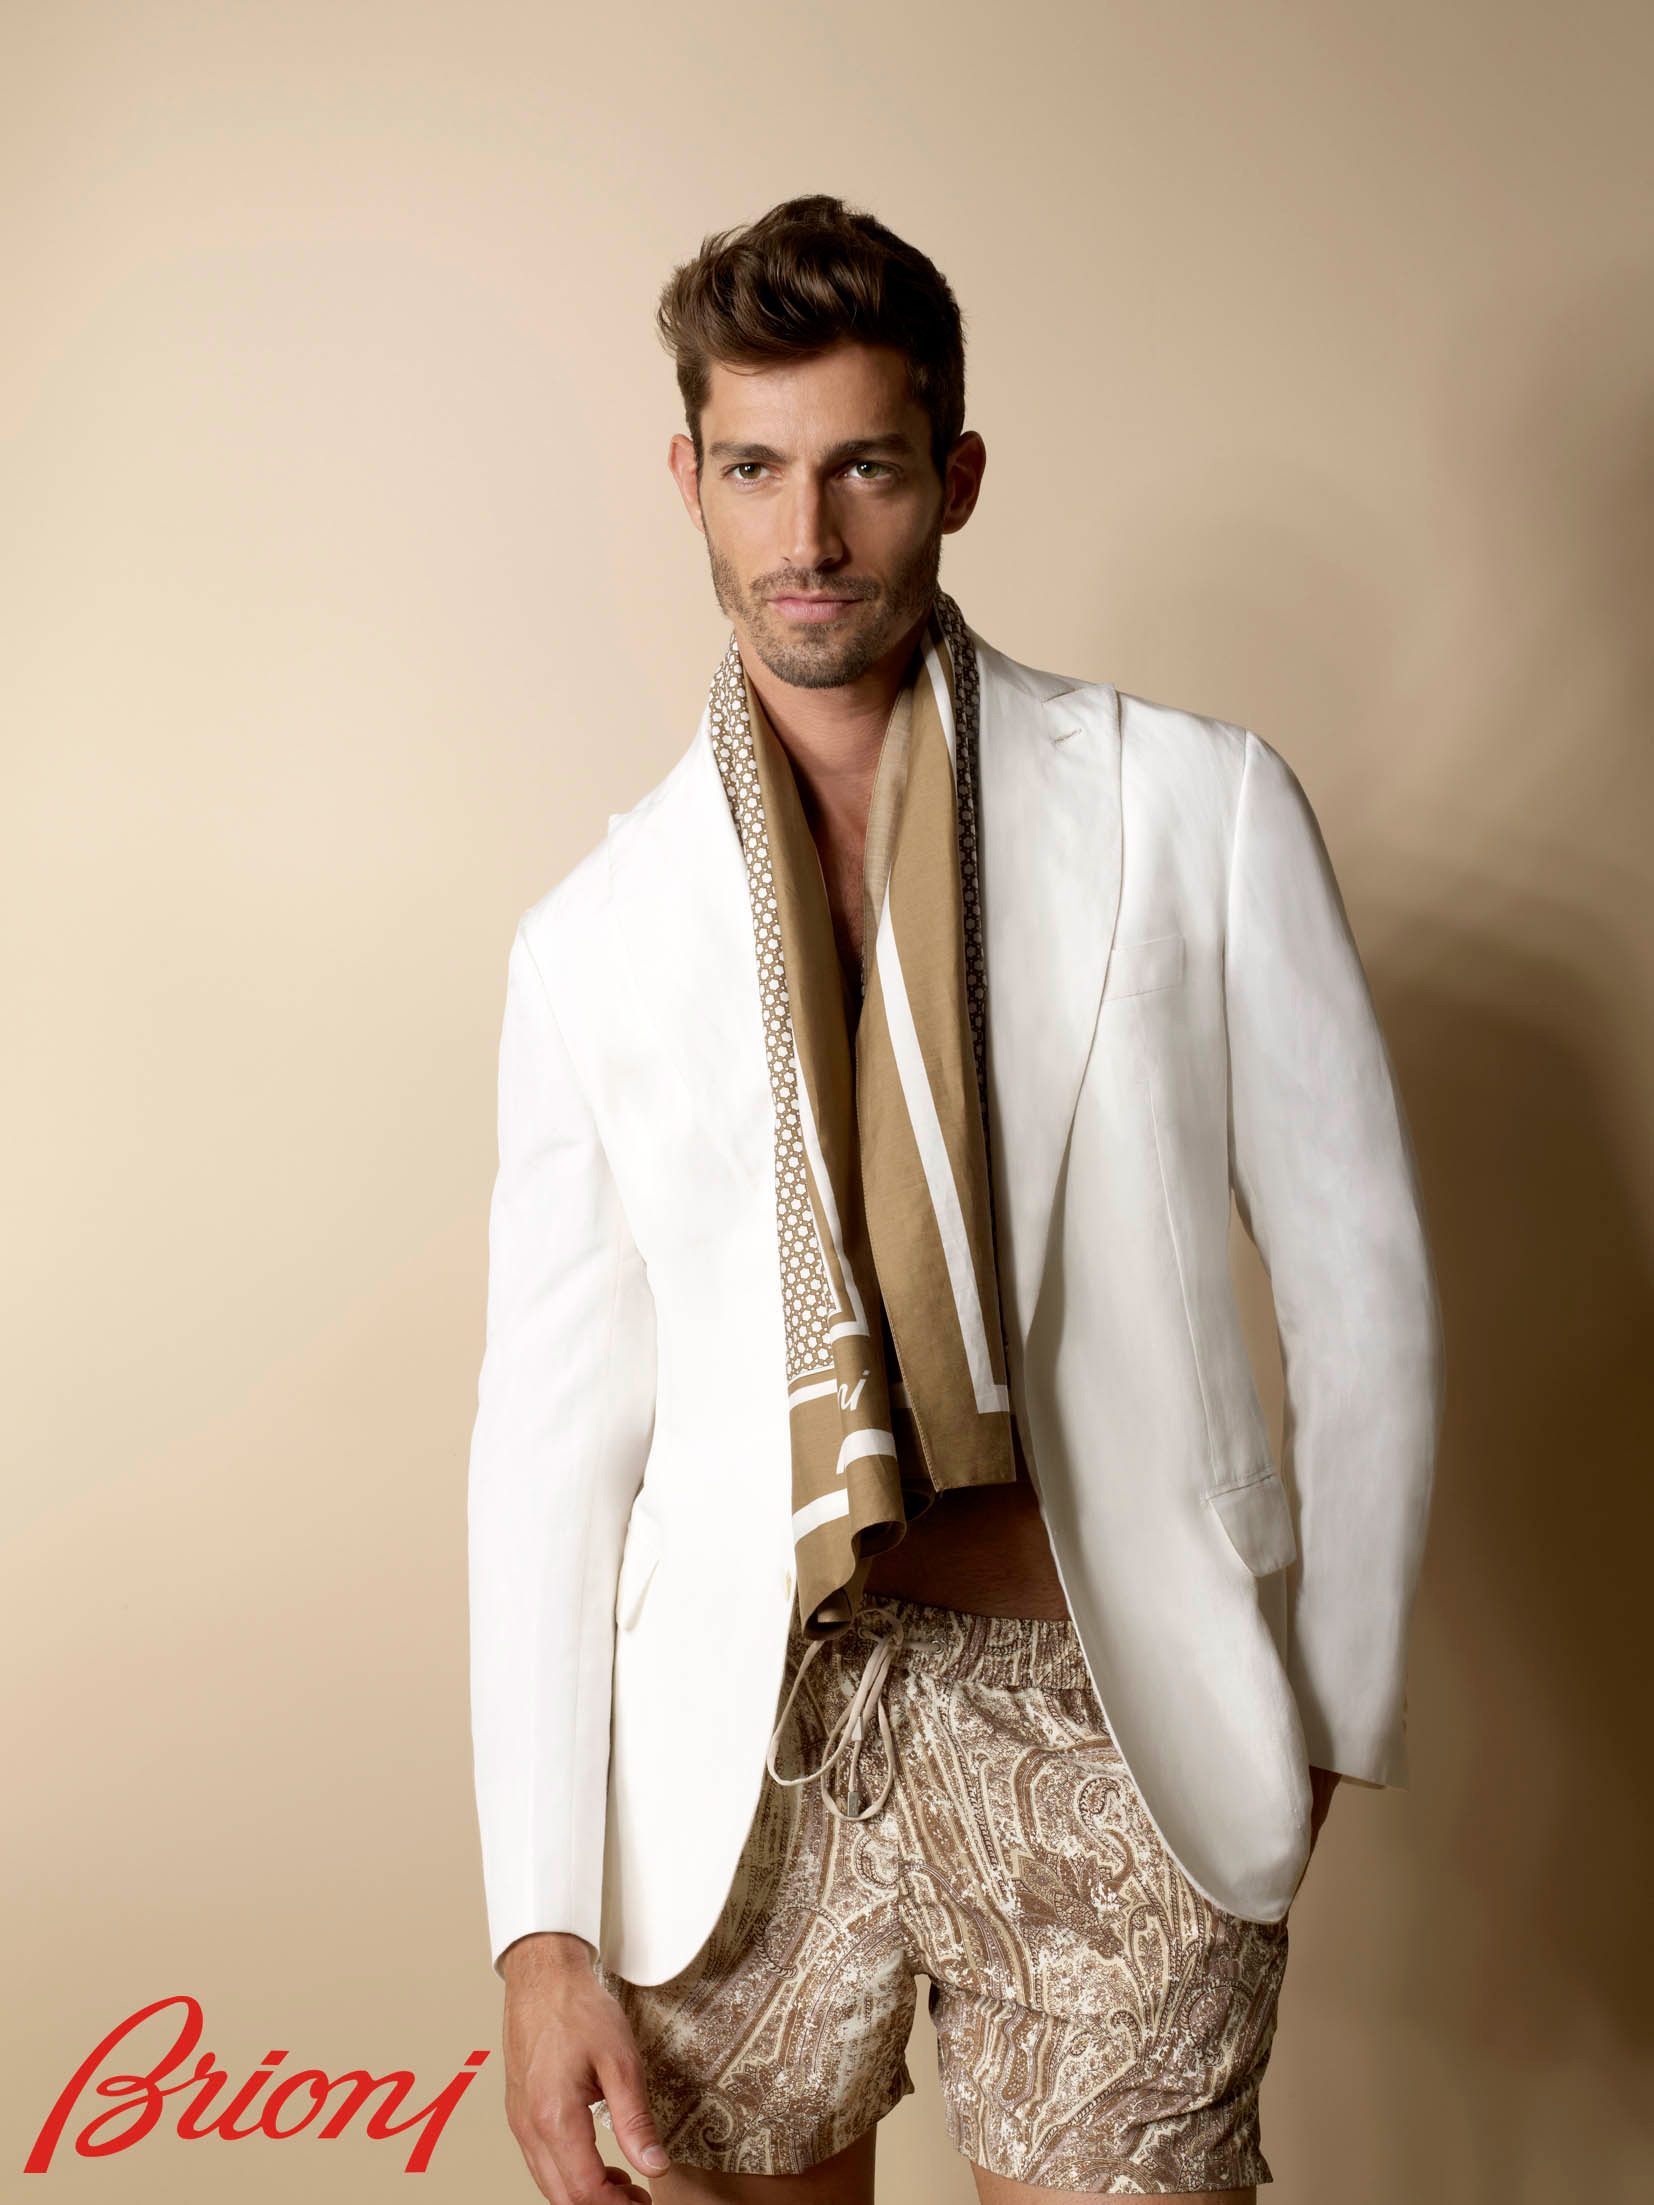 Maximiliano-Patane-by-Giovanni-Squatriti-for-Brioni-Spring-Summer-2012